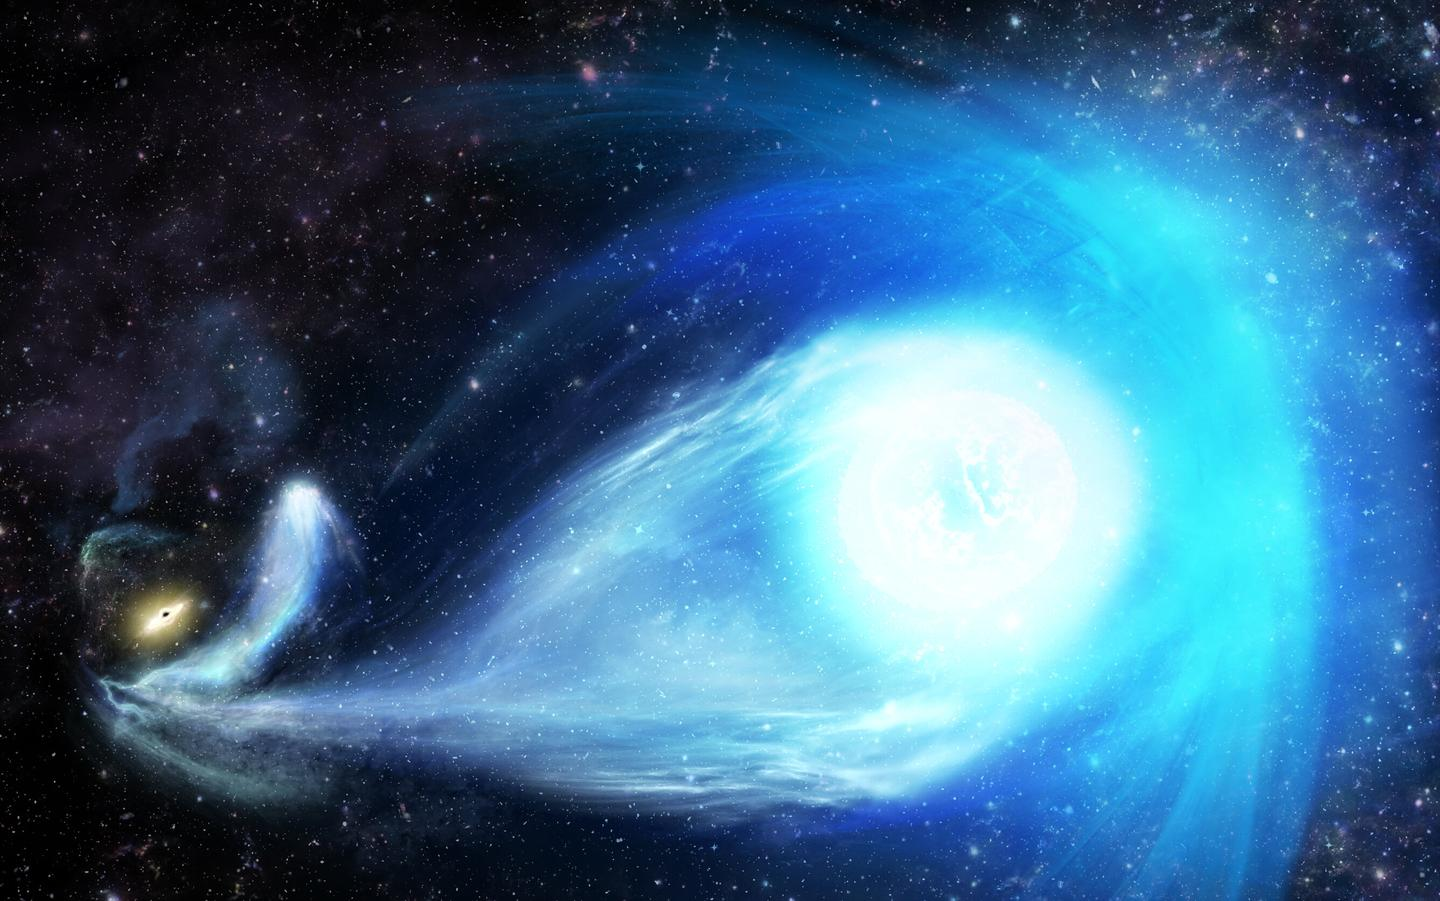 An artist's rendition of a hypervelocity star, being ejected away from a supermassive black hole